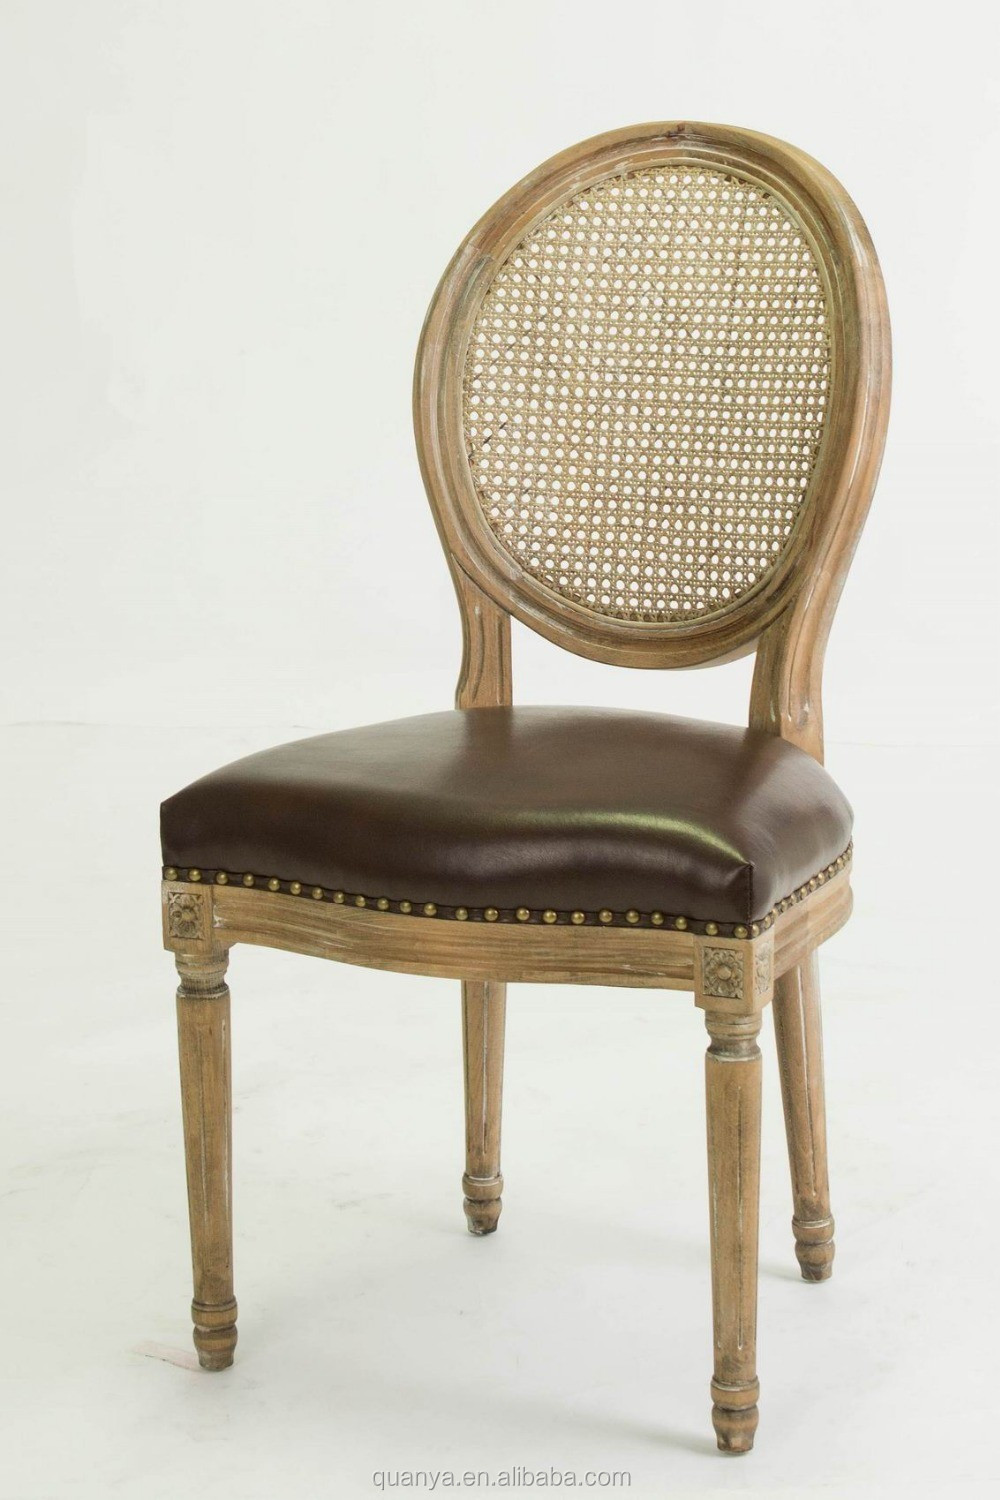 French Cane Chairs, French Cane Chairs Suppliers and Manufacturers ...